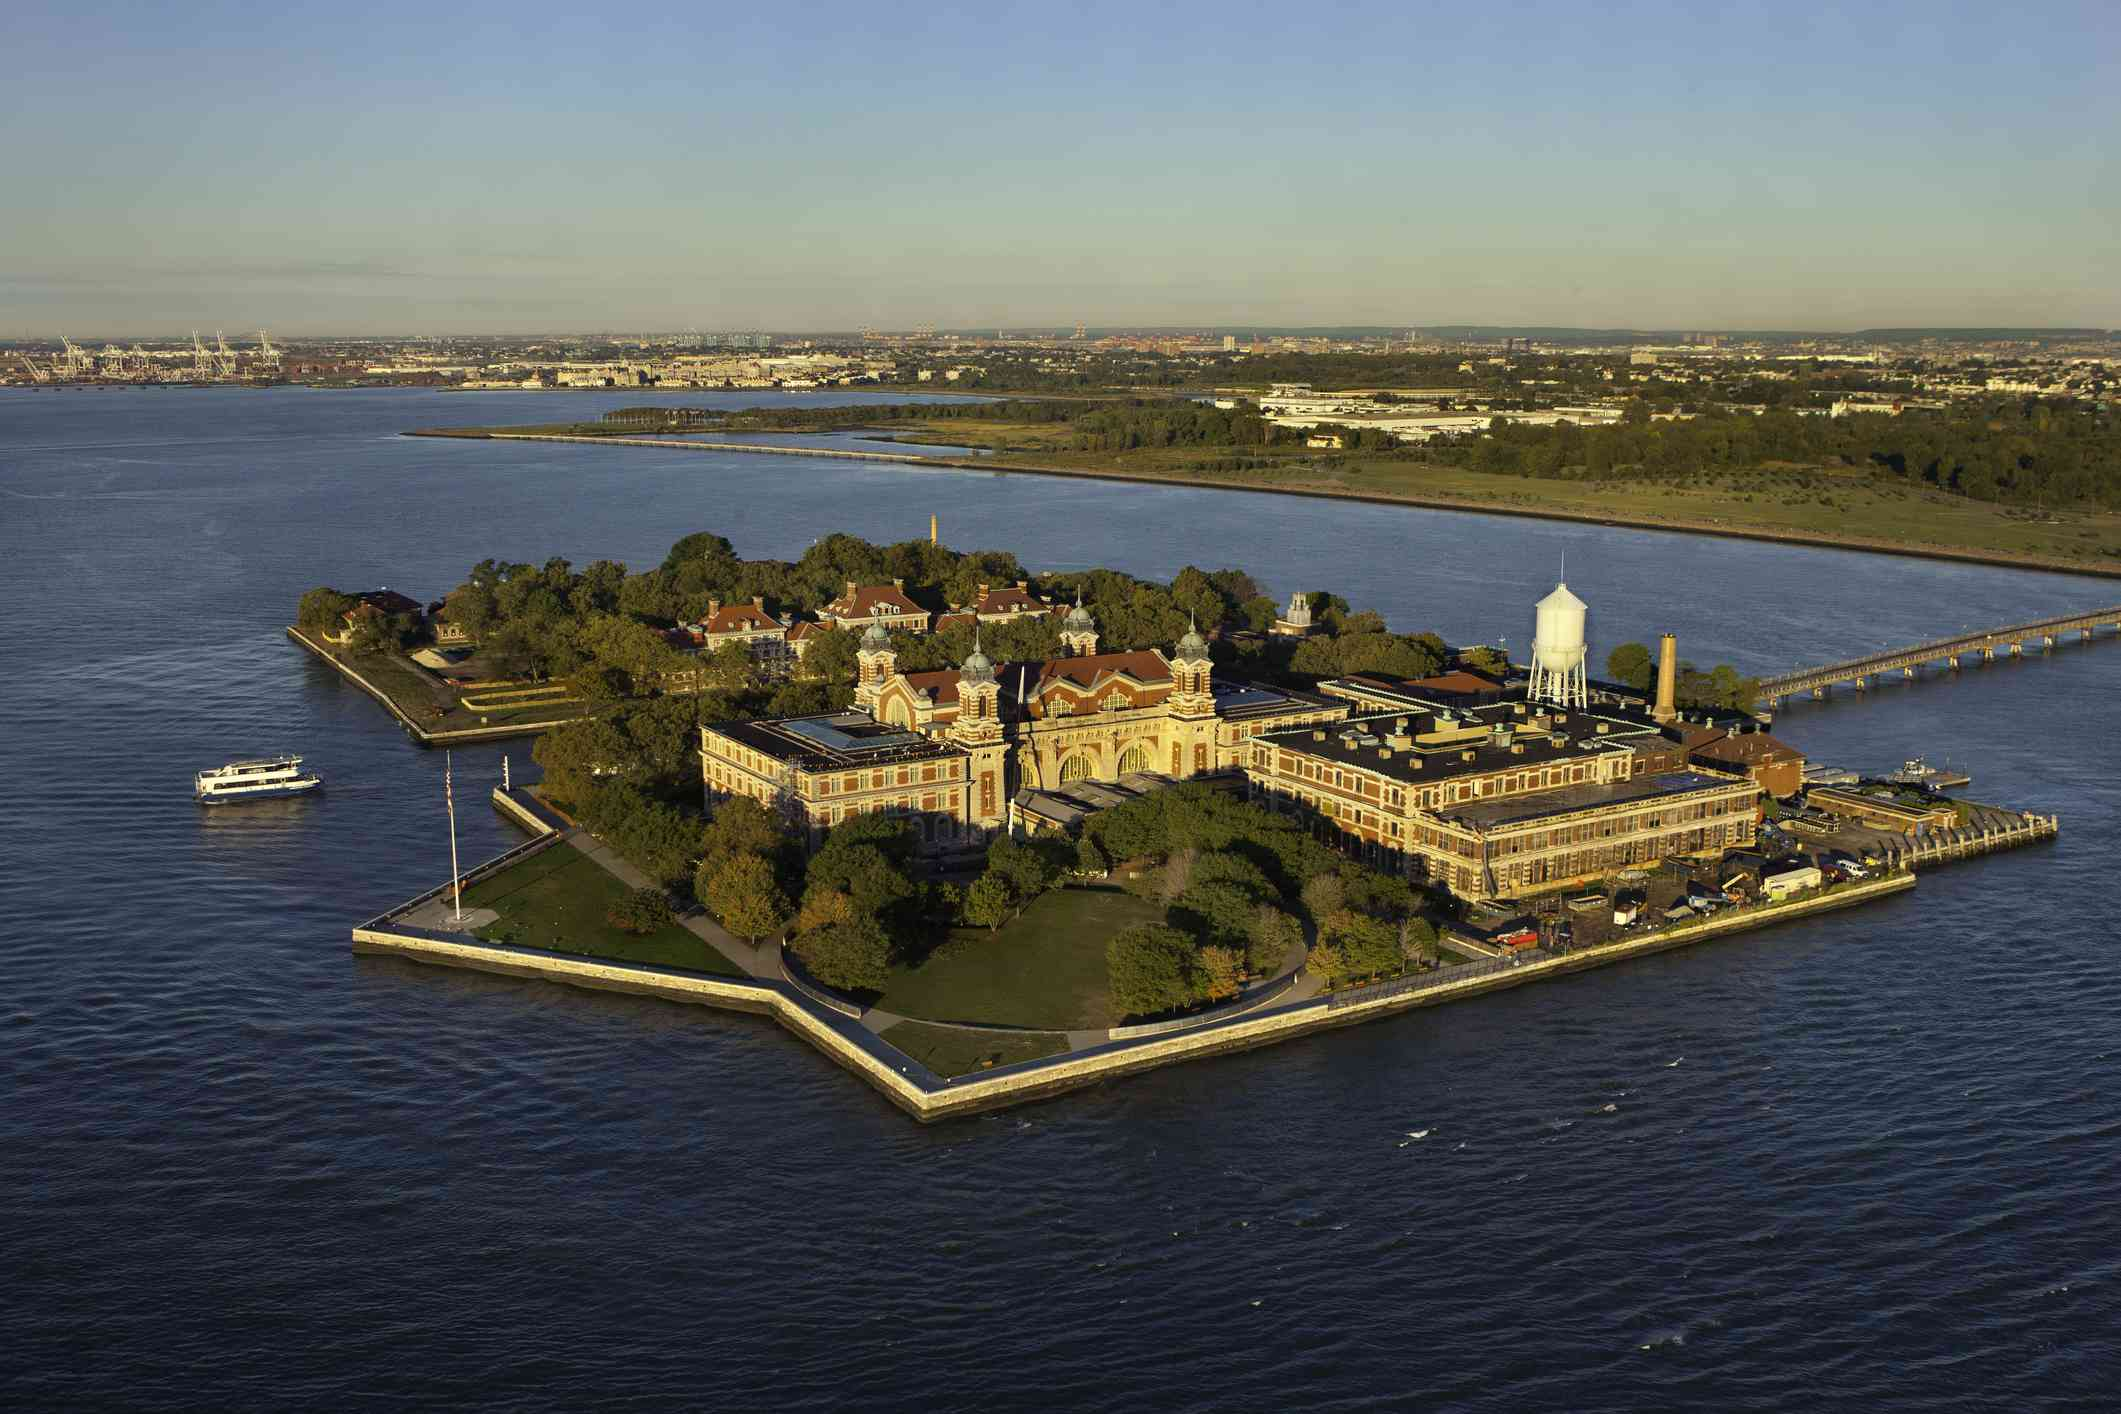 aerial view of the historic buildings and green space of Ellis Island, an island surrounded by the Hudson River in Manhattan, New York